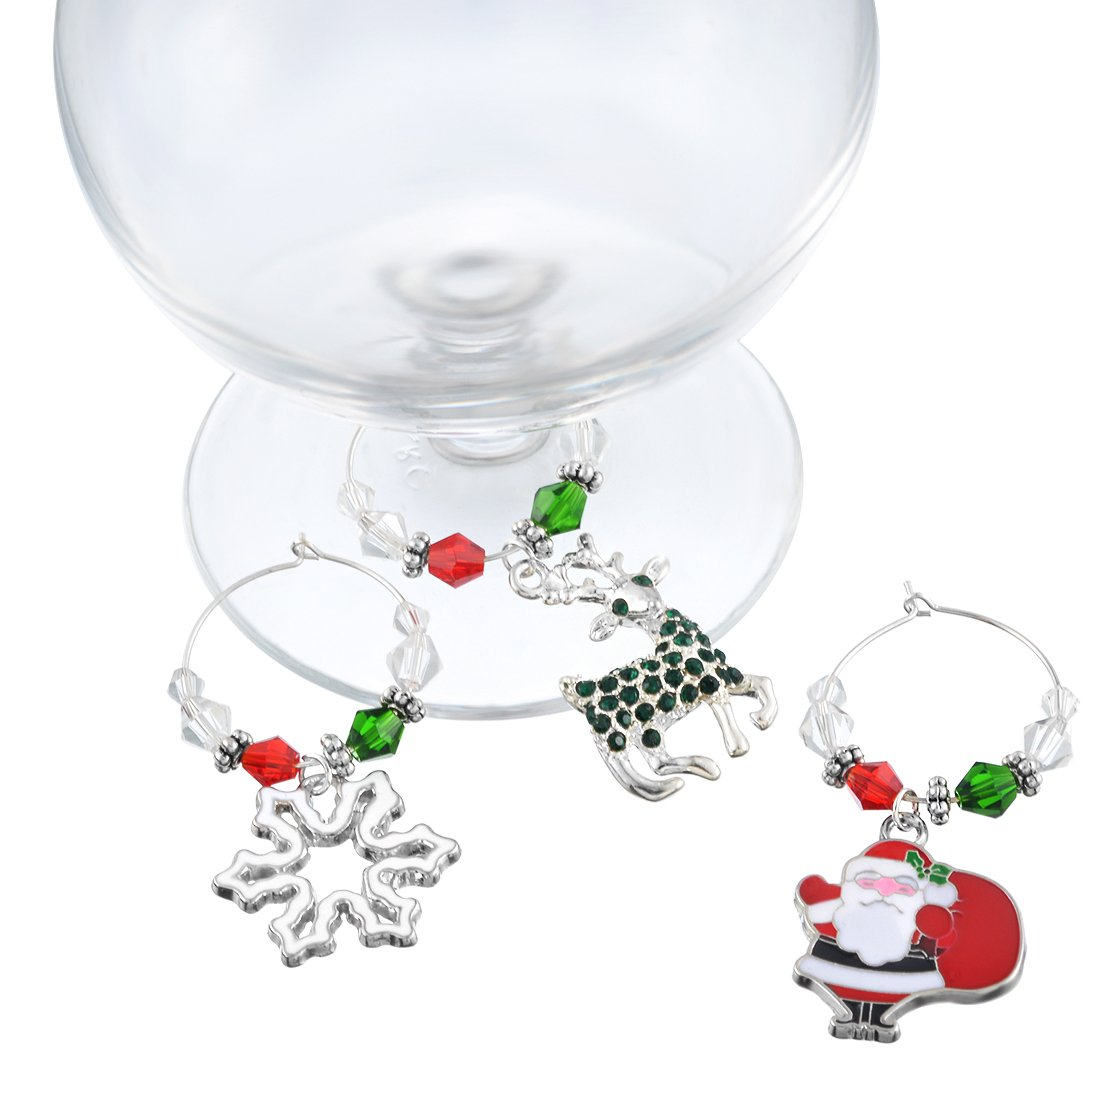 Souarts Mixed 6pcs Glass Charms Marker Tags Set with Gift Box Christmas Father Elk Snowflake Gift Bell Pendants by Souarts (Image #2)